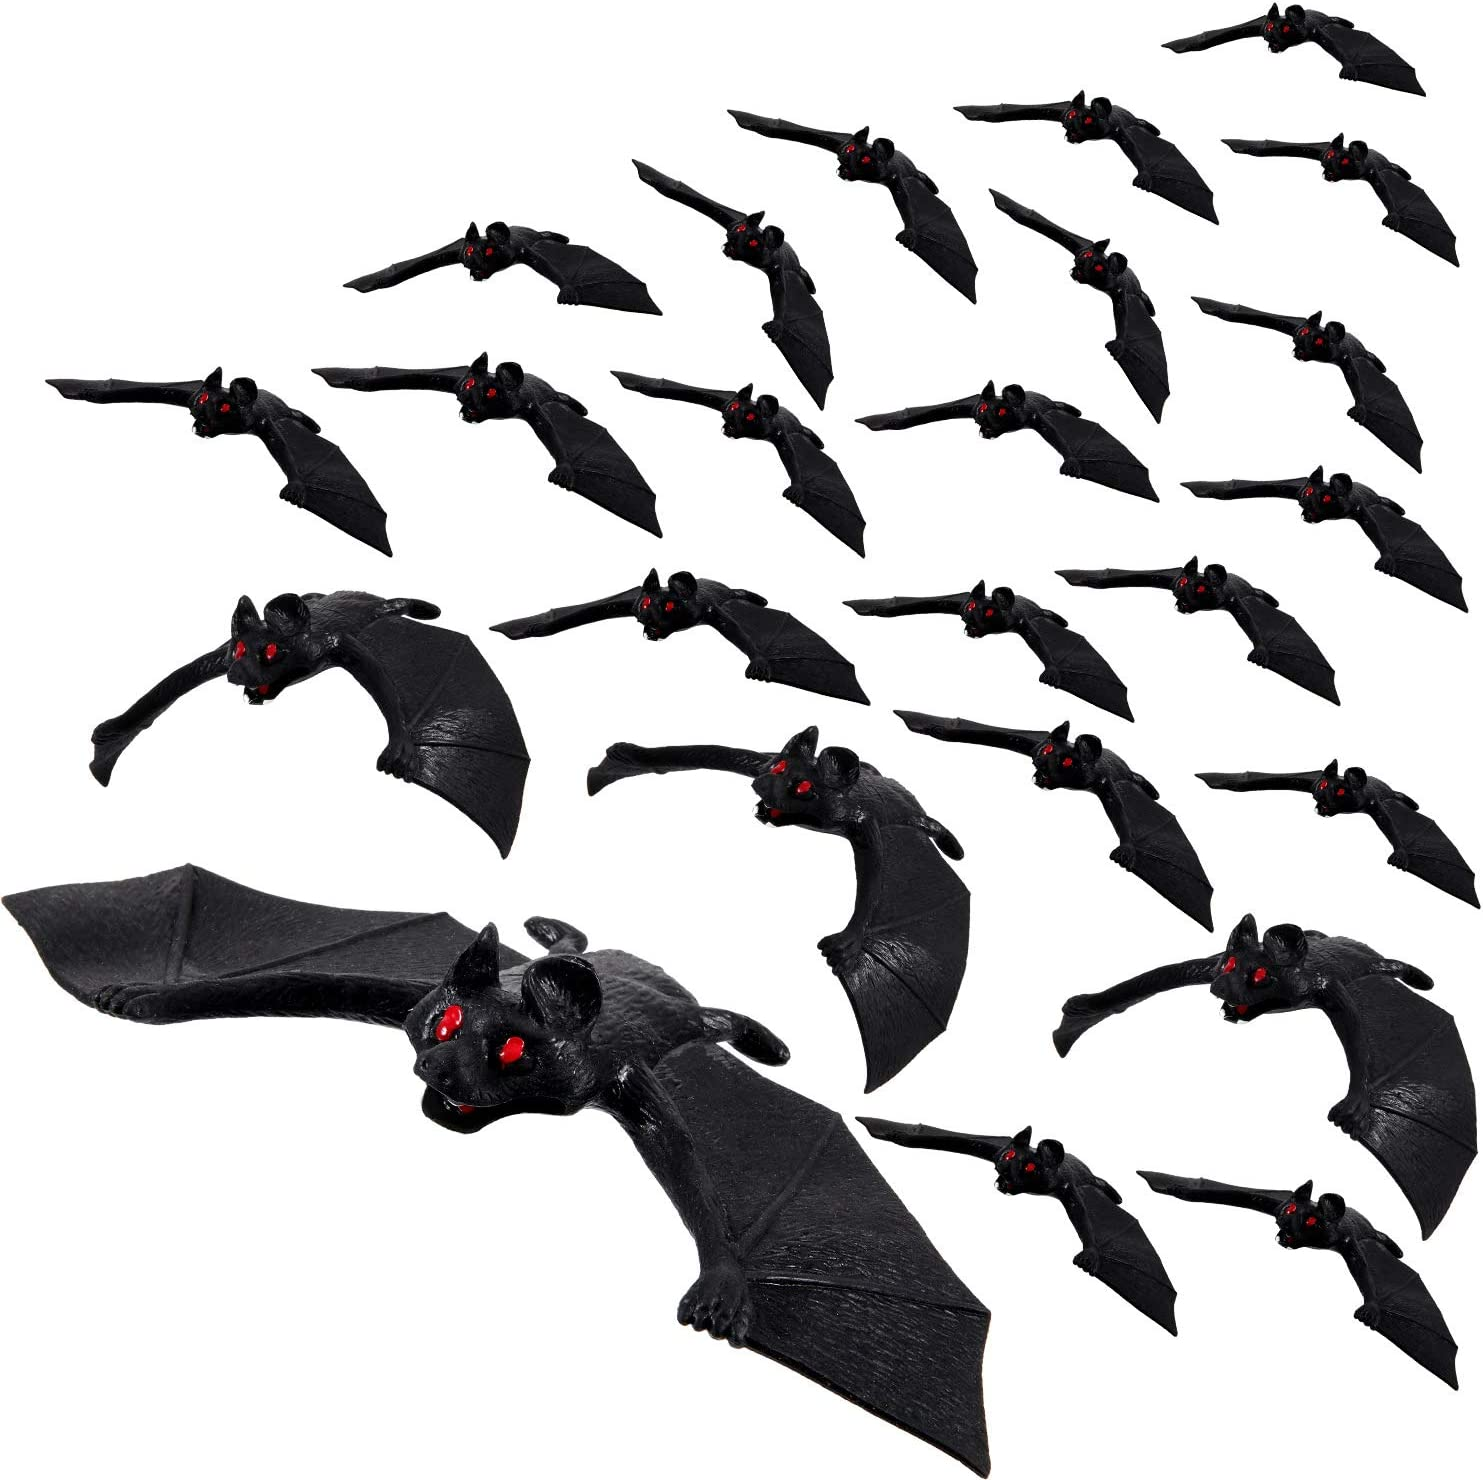 24 Pieces Halloween Hanging Bats Fake Rubber Bats Realistic Fake Spooky Hanging Bats Flying Bats Décor for Halloween Party Decoration,Haunted House Supplies,3 Size